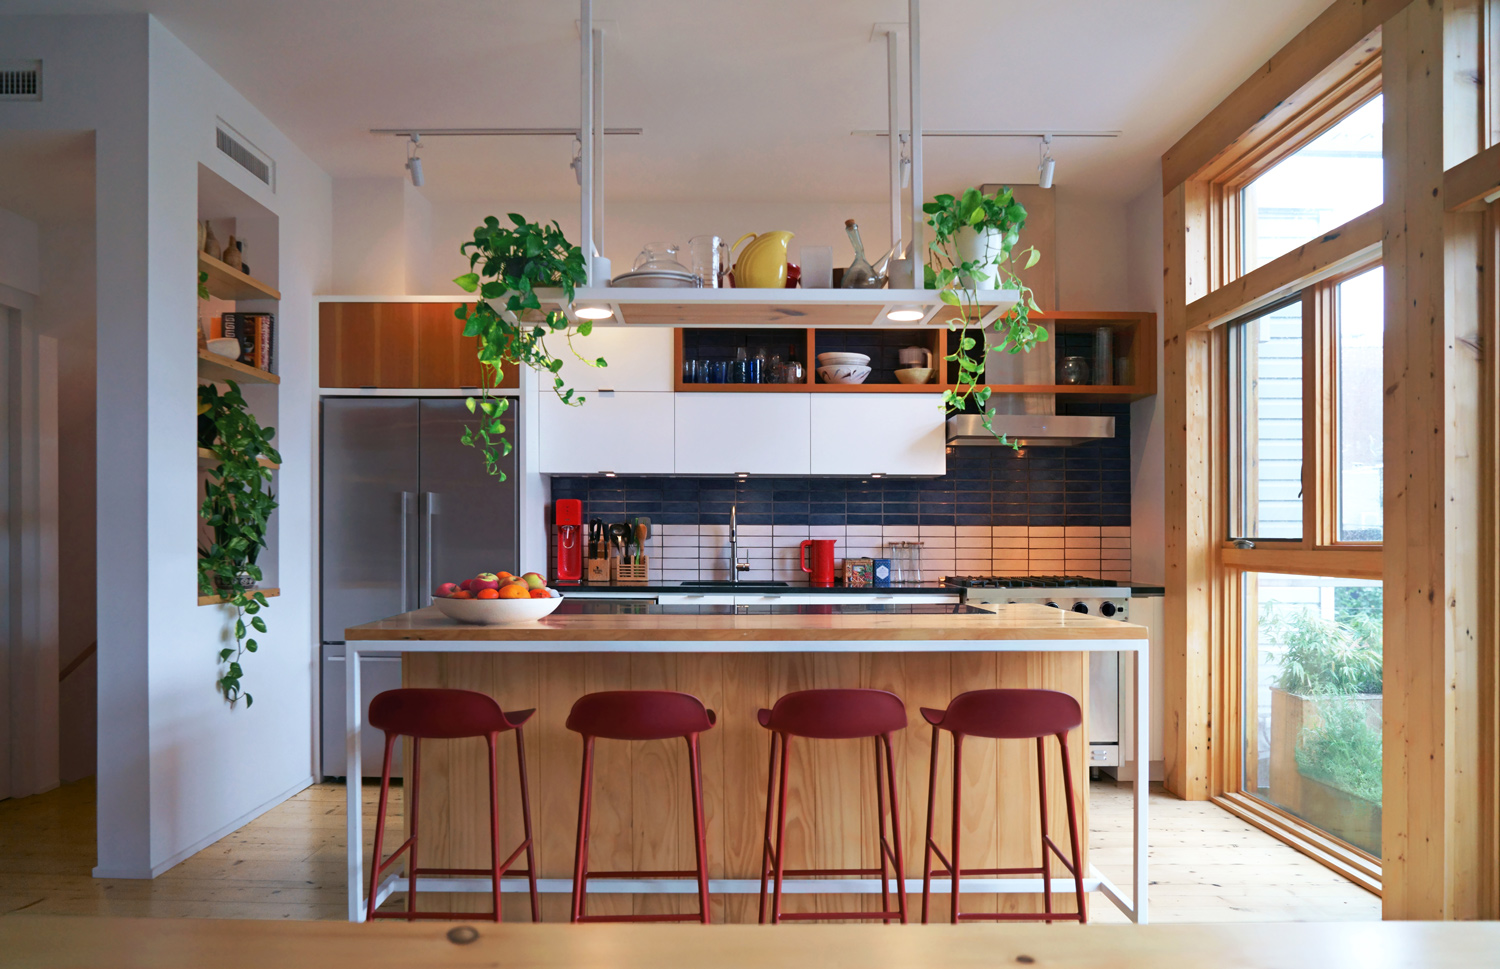 brooklyn-architect-townhouse-renovation4-kitchen.jpg